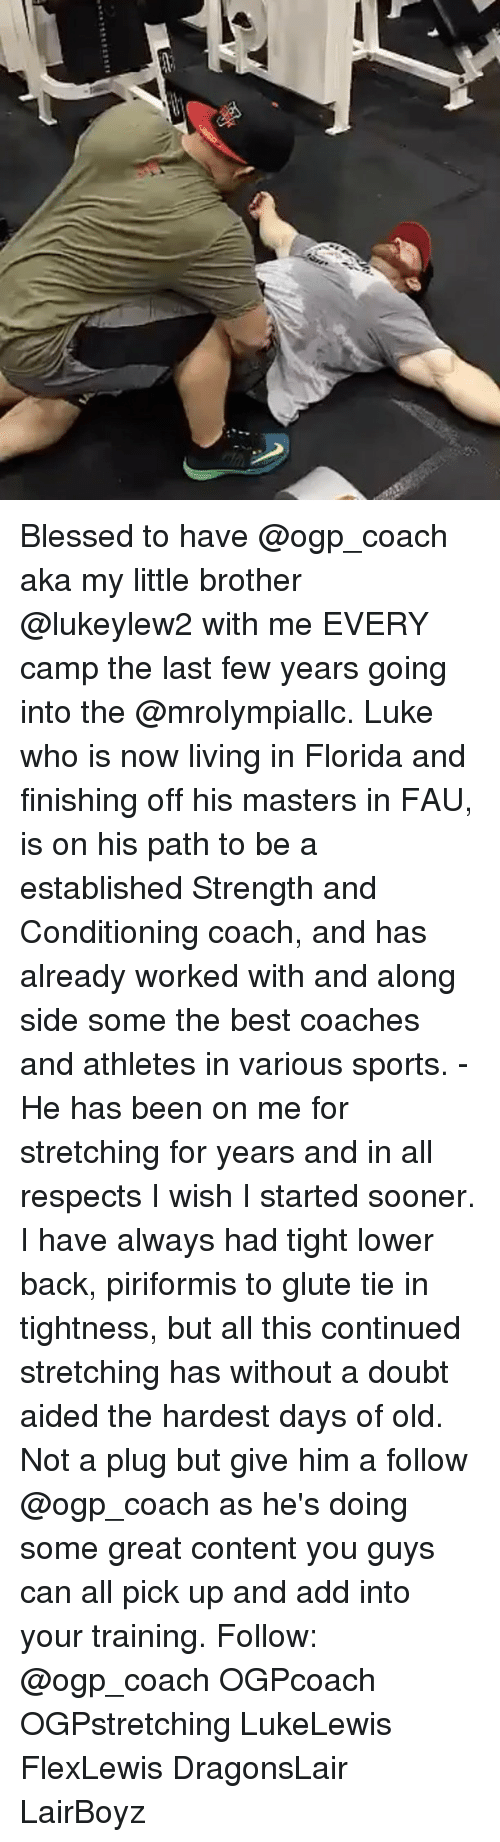 Plugging: Blessed to have @ogp_coach aka my little brother @lukeylew2 with me EVERY camp the last few years going into the @mrolympiallc. Luke who is now living in Florida and finishing off his masters in FAU, is on his path to be a established Strength and Conditioning coach, and has already worked with and along side some the best coaches and athletes in various sports. - He has been on me for stretching for years and in all respects I wish I started sooner. I have always had tight lower back, piriformis to glute tie in tightness, but all this continued stretching has without a doubt aided the hardest days of old. Not a plug but give him a follow @ogp_coach as he's doing some great content you guys can all pick up and add into your training. Follow: @ogp_coach OGPcoach OGPstretching LukeLewis FlexLewis DragonsLair LairBoyz